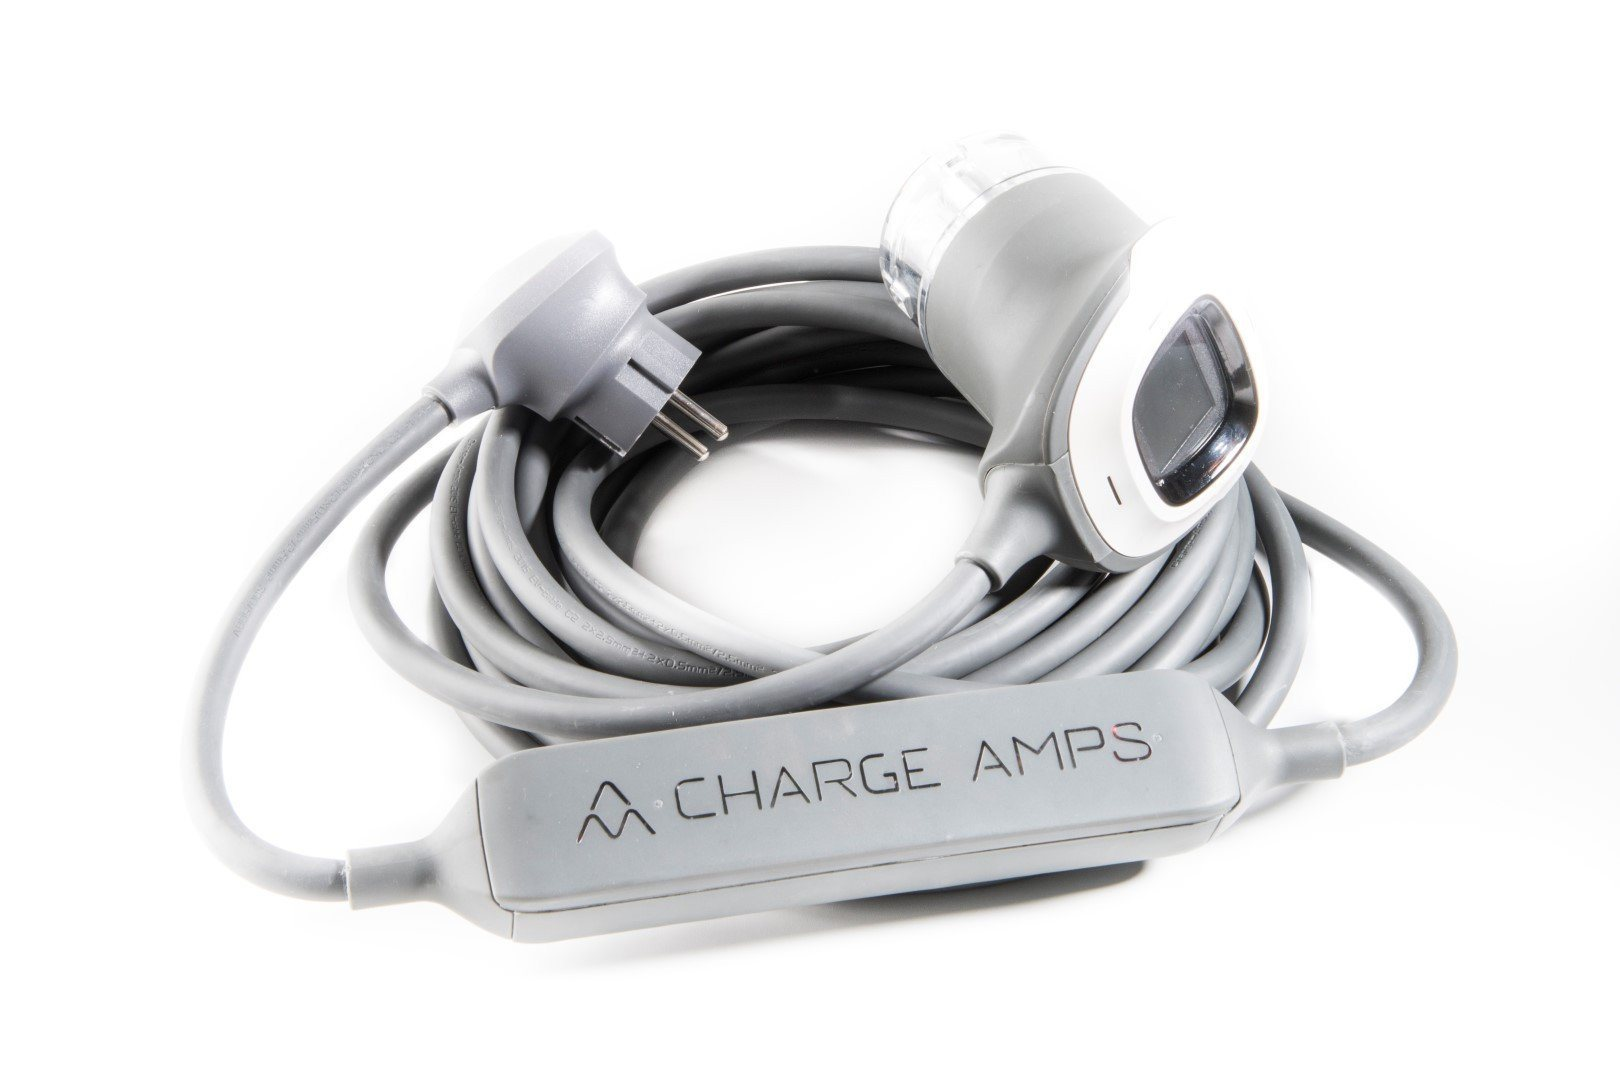 <b>Charge Amps RAY - Schuko til type 1 & type 2 - justerbar ladekabel 6A/10A/16A - 1-fas</b>  - Elbilgrossisten - 13